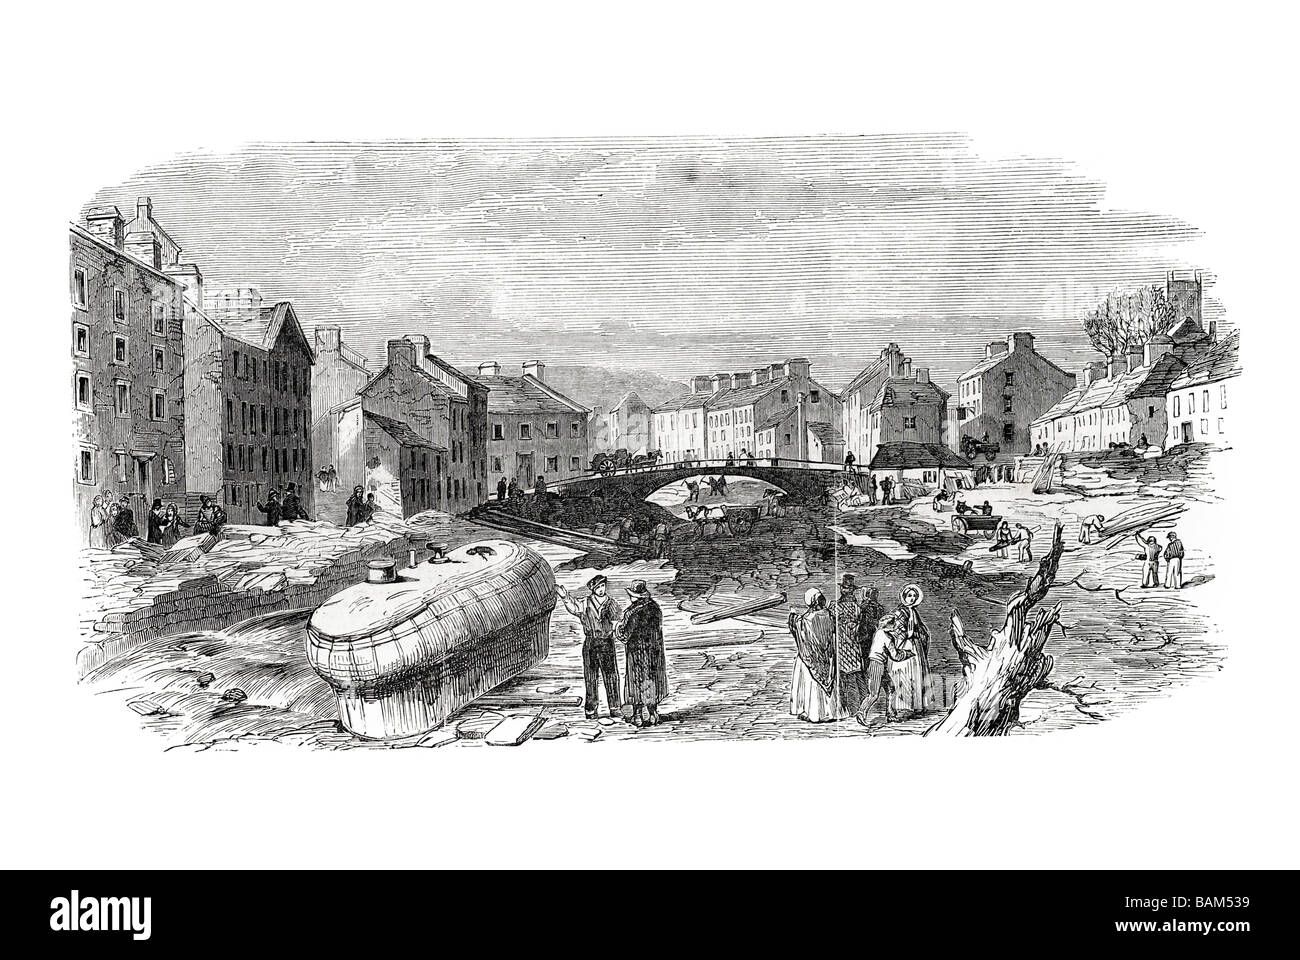 village of holmfirth from victoria bridge Flood 1852 severe flooding Holme Valley West Yorkshire England - Stock Image